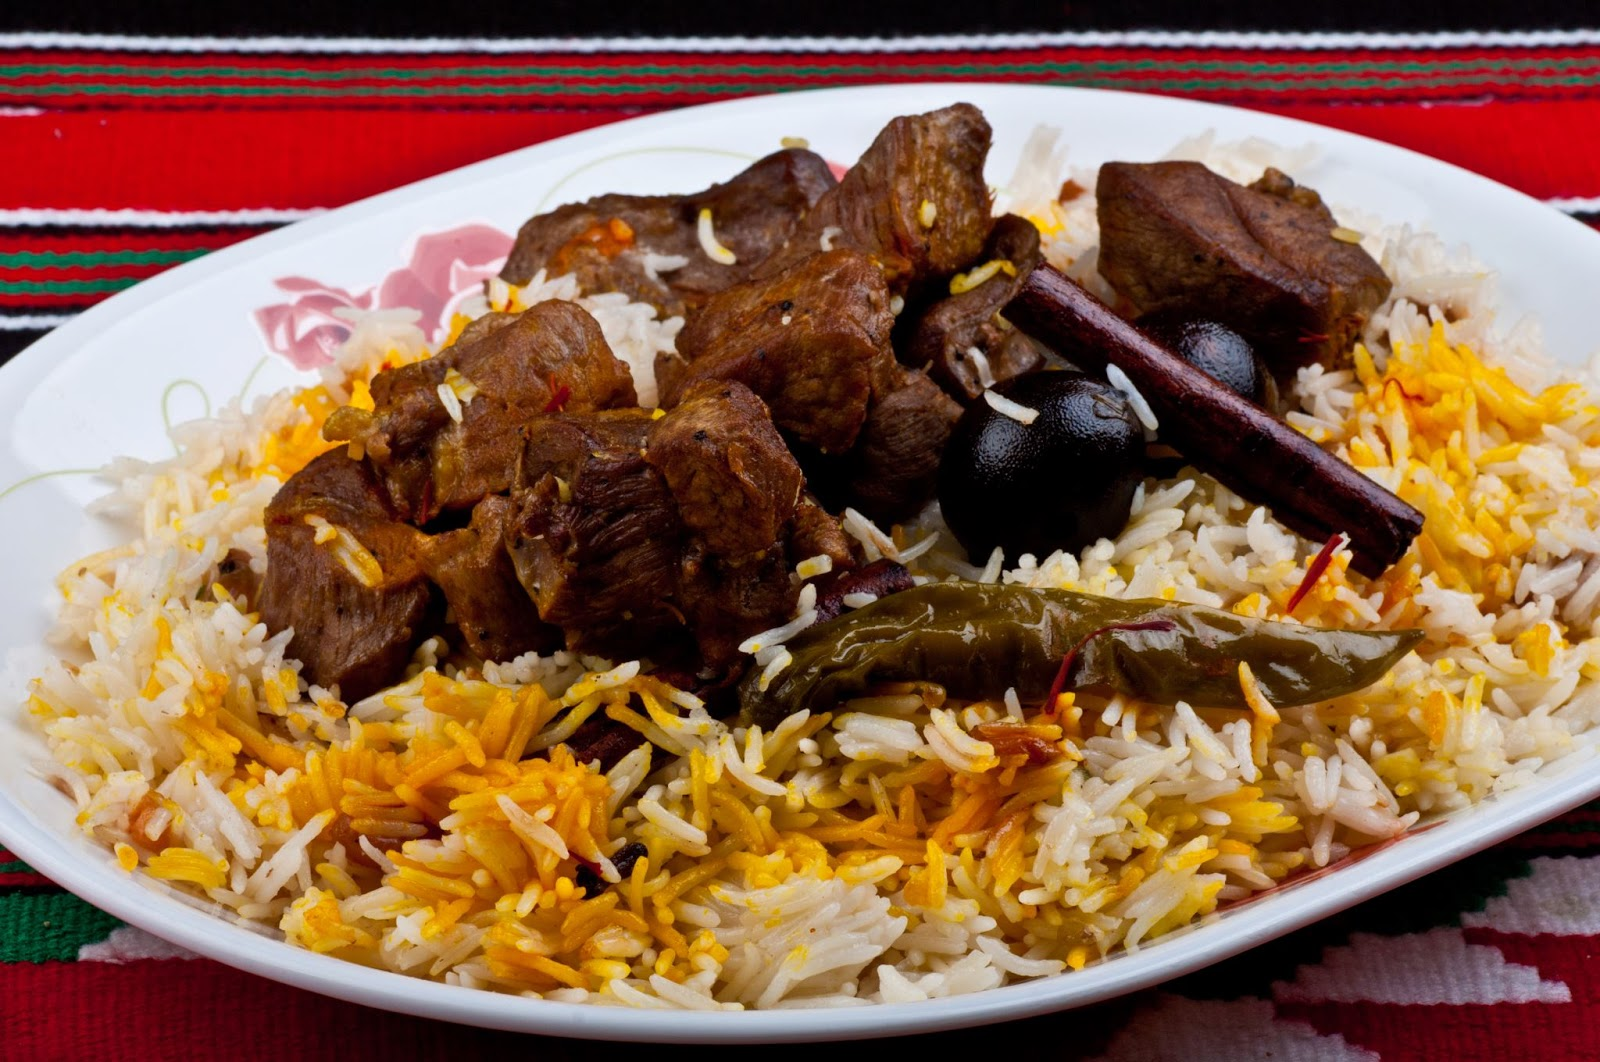 Flavours of asia lamb mandi with saffron basmati rice and raisins lamb mandi with saffron basmati rice and raisins chef ammar alis recipe forumfinder Choice Image